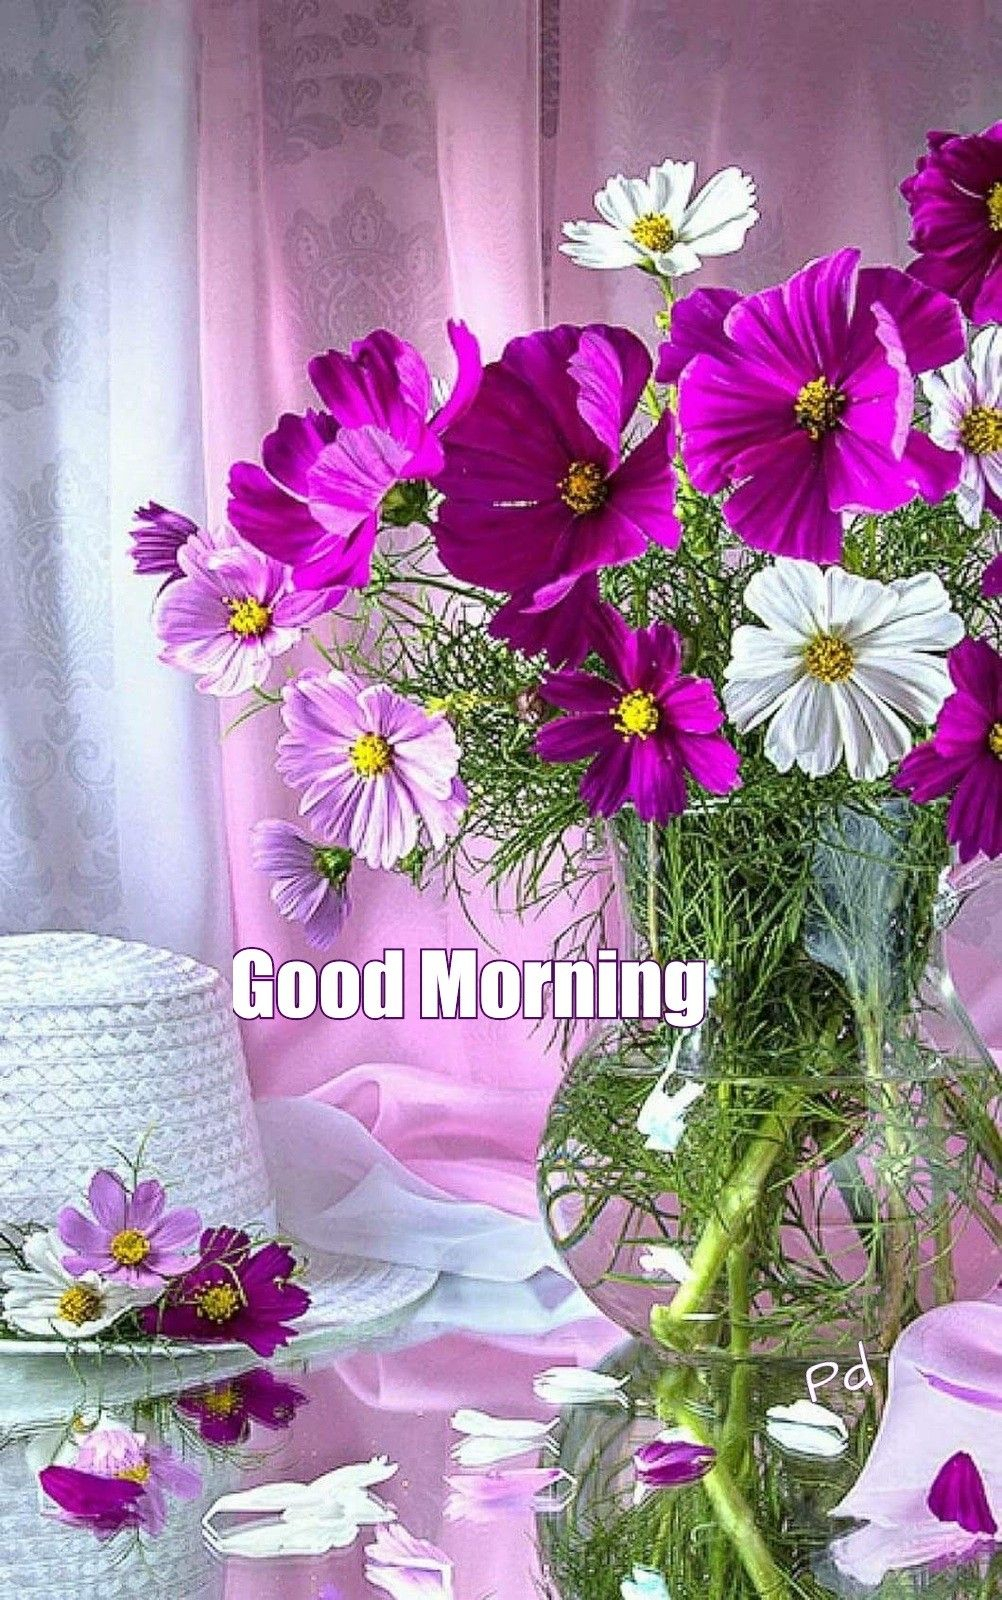 Good Morning Greetings Cosmos Flowers Beautiful Flowers for sizing 1002 X 1600